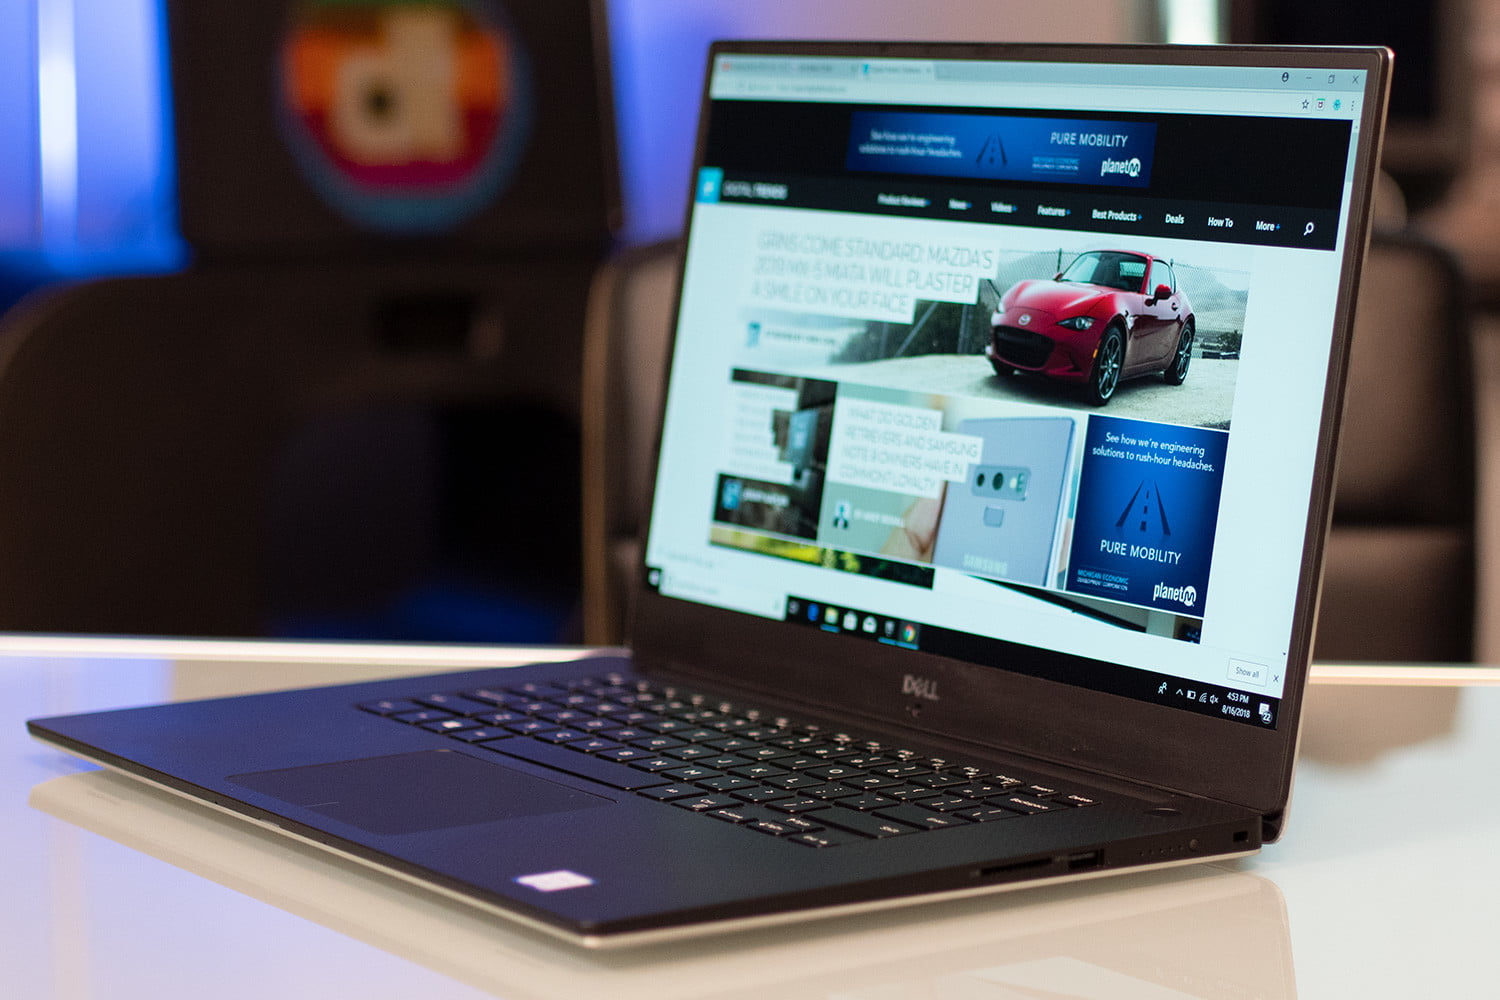 DELL XPS 15 (2019) Review: The beast just got better!